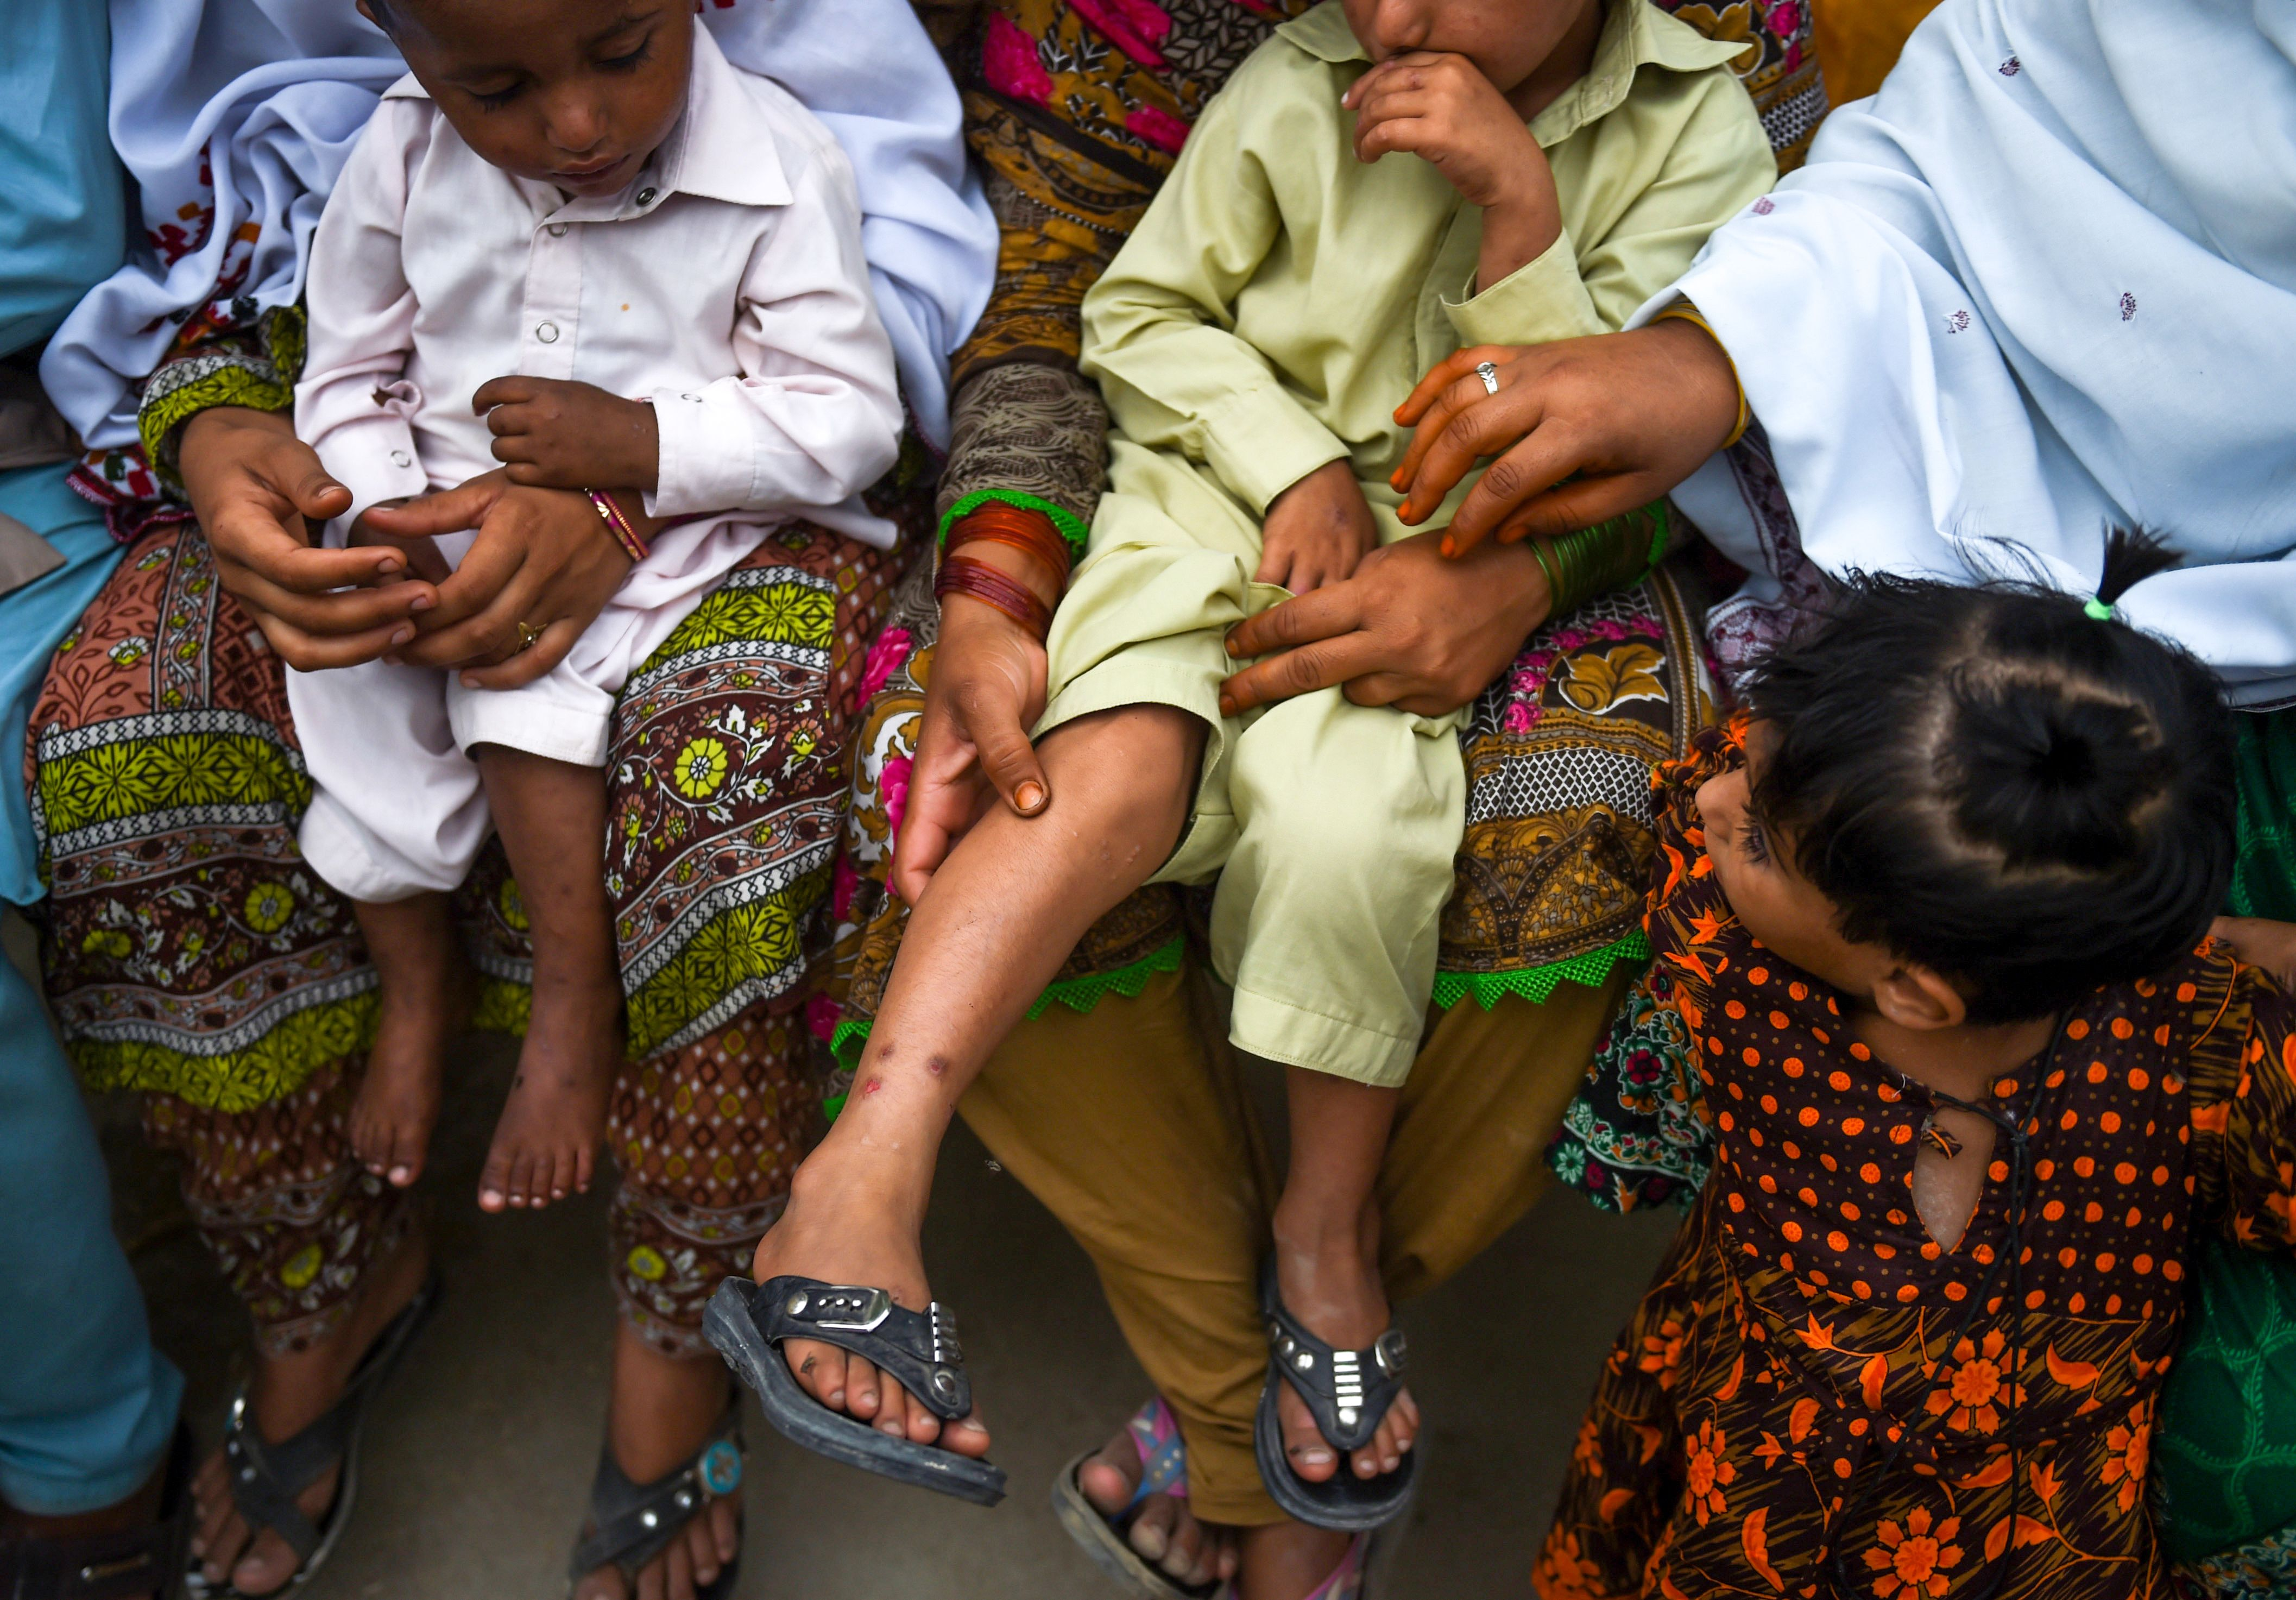 In this image taken on May 8, 2019, Pakistani women hold their HIV infected children as they gather at a house at Wasayo village in Rato Dero in the district of Larkana of the southern Sindh province. (Photo credit should read RIZWAN TABASSUM/AFP/Getty Images)